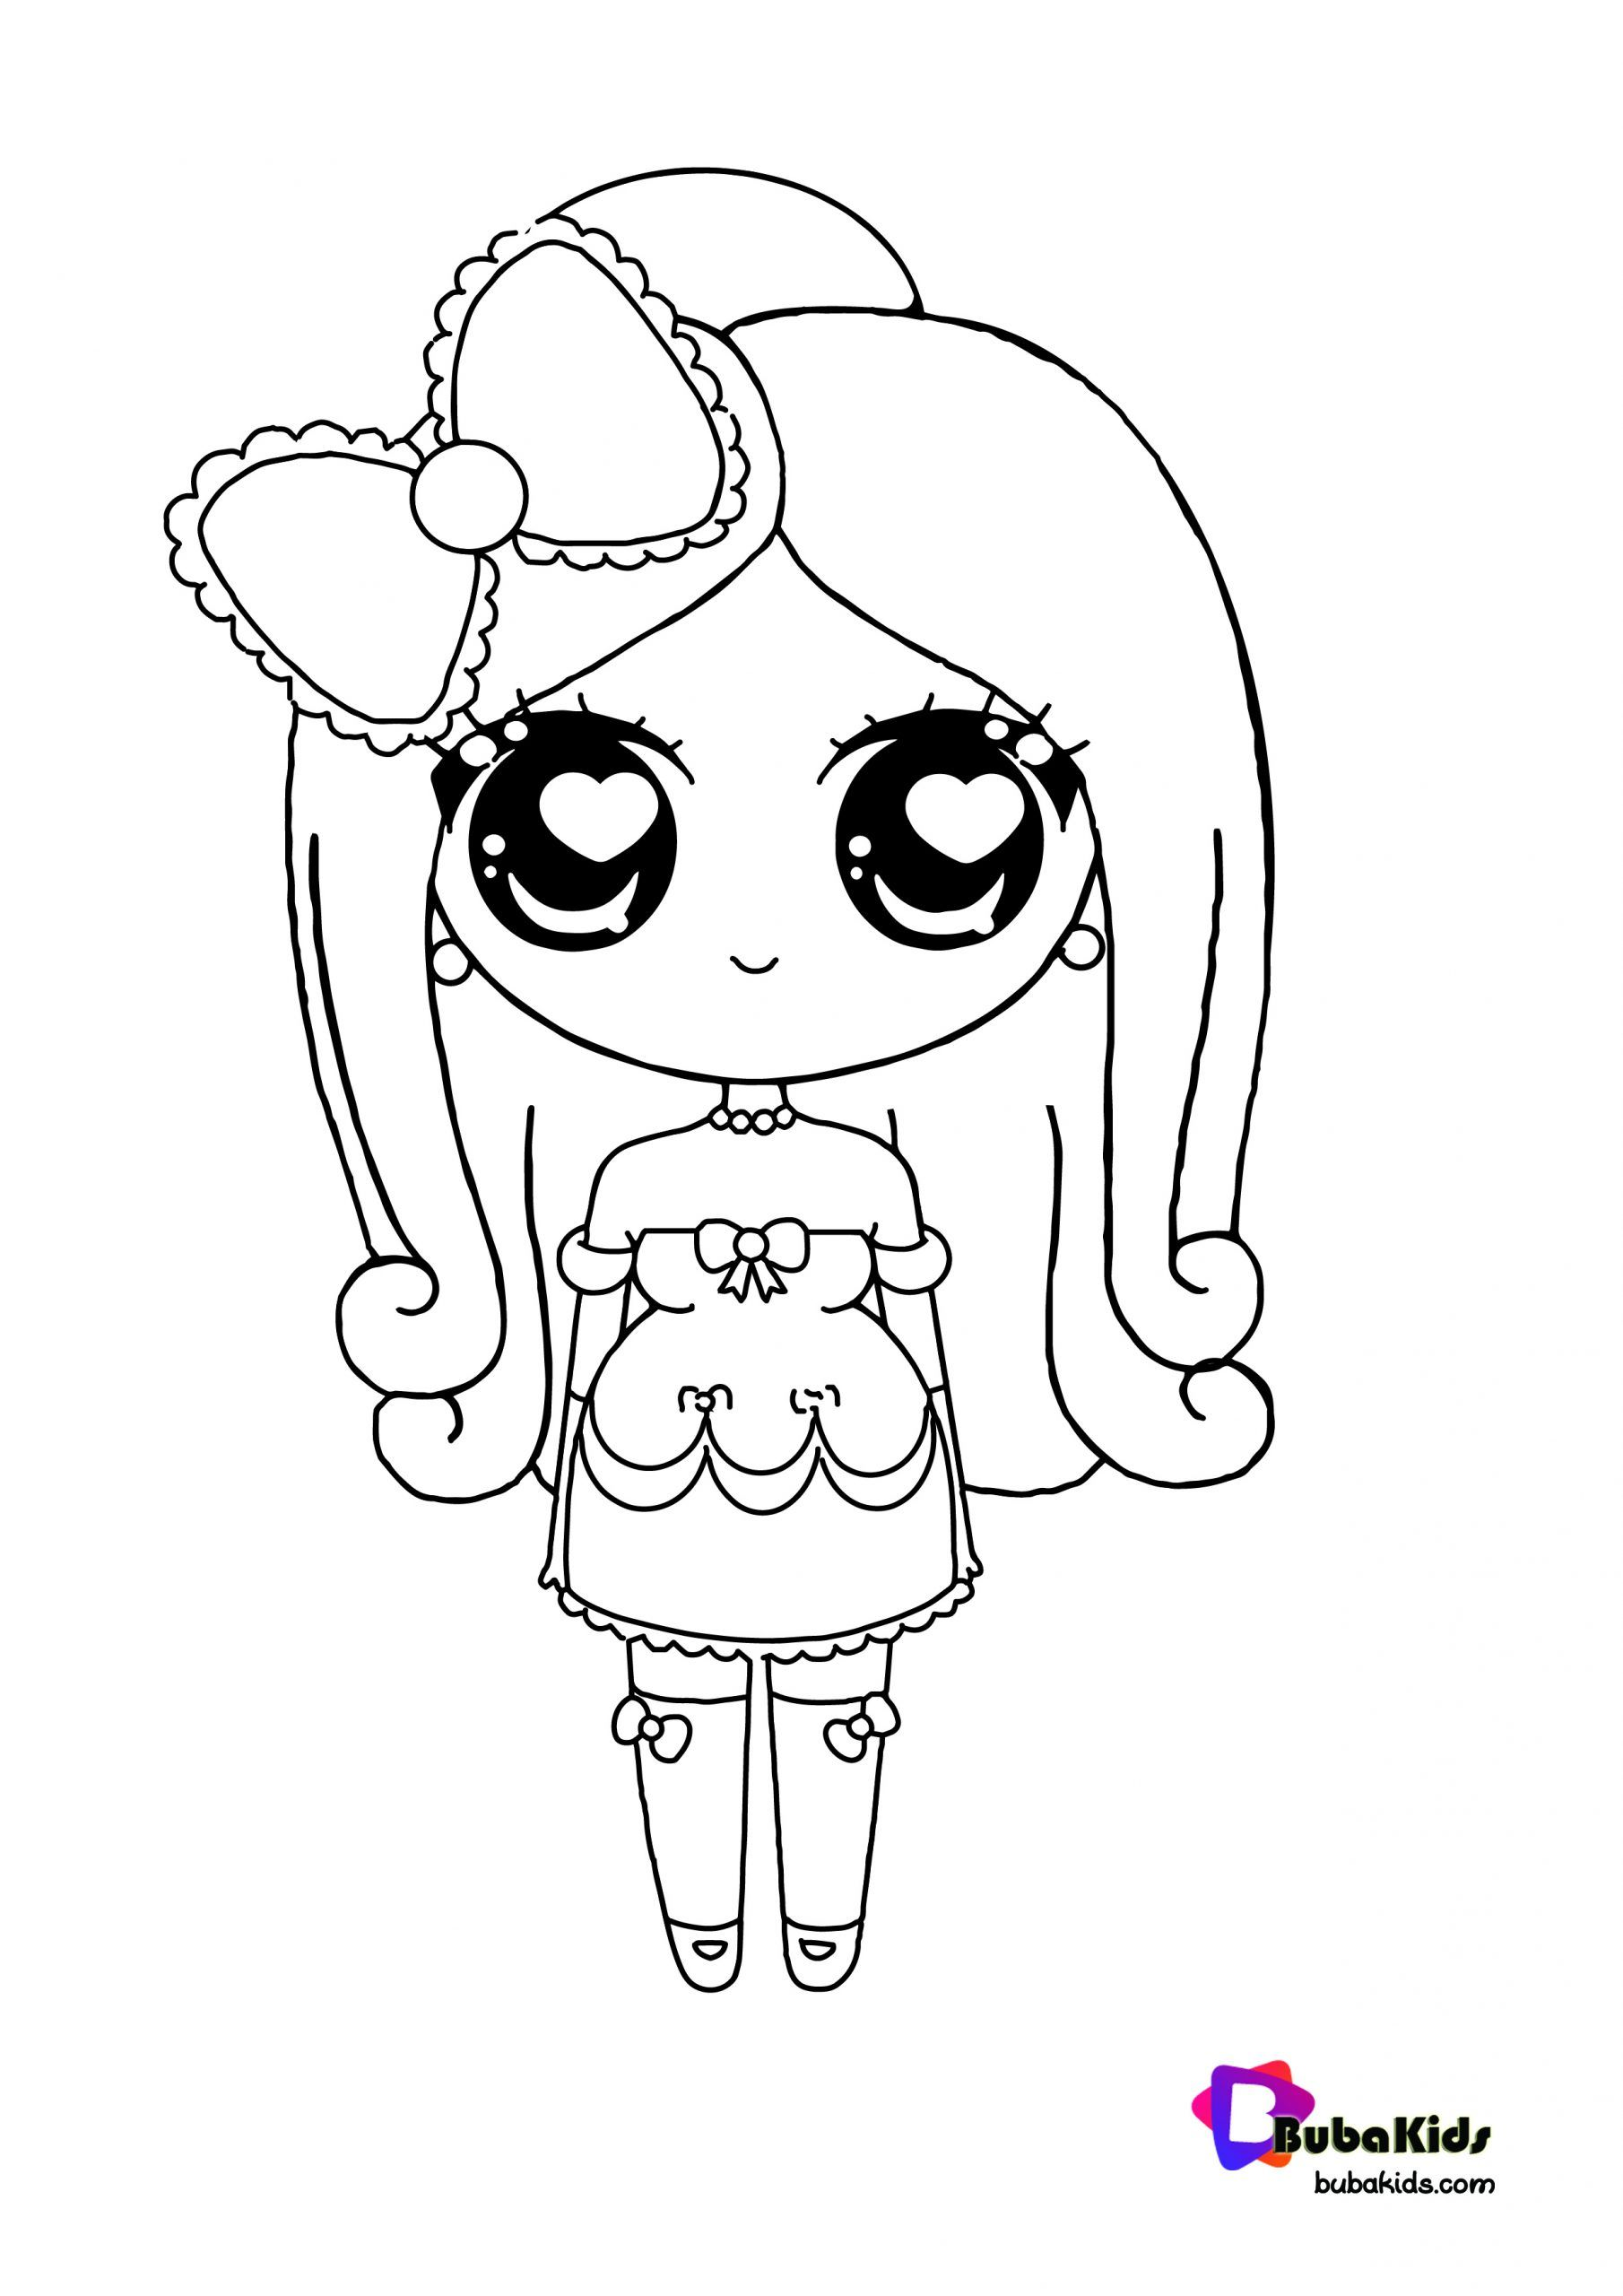 Kawaii Princess Coloring Page Collection Of Cartoon Coloring Pages For Teenage Printable That You Can Princess Coloring Pages Coloring Pages Princess Coloring